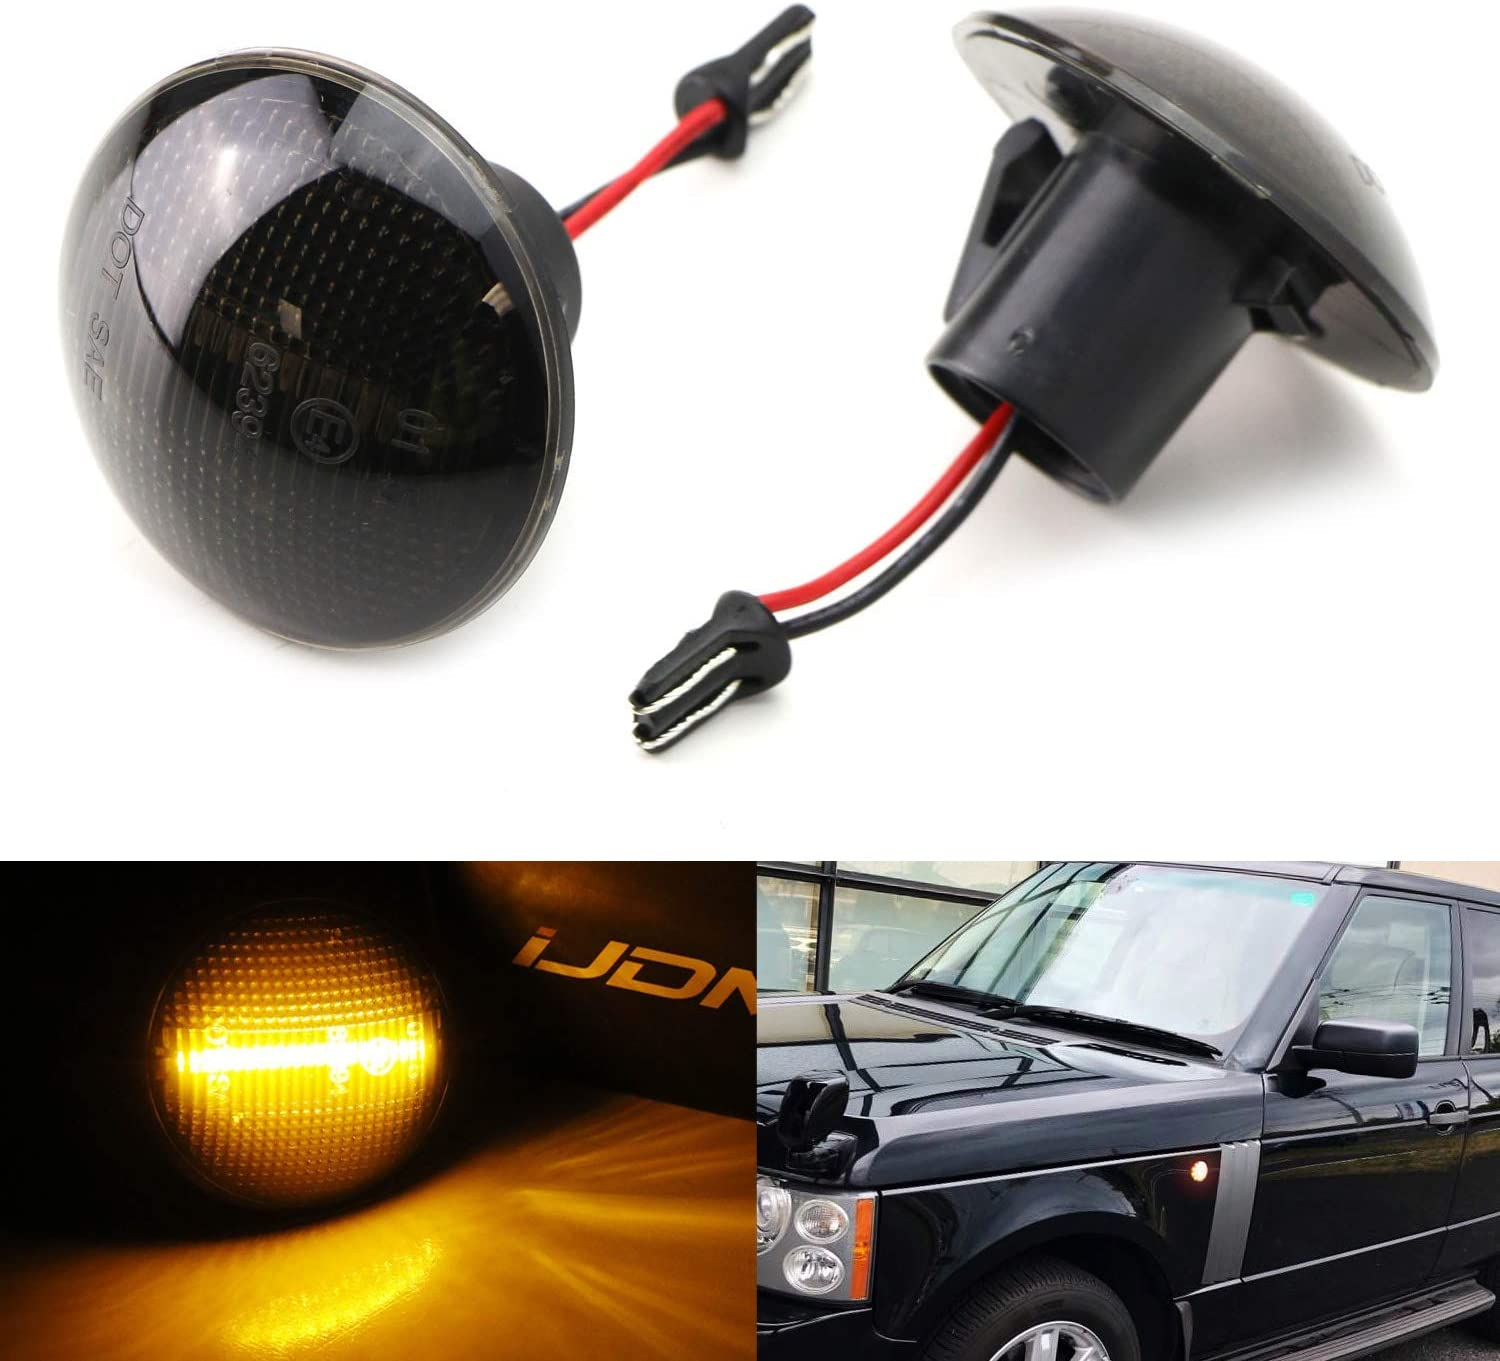 iJDMTOY Smoked Lens Amber Full LED Front Side Marker Light Kit Compatible With 2003-2012 Land Rover Range Rover L322, Powered by 18-SMD LED, Replace OEM Clear Sidemarker Lamps